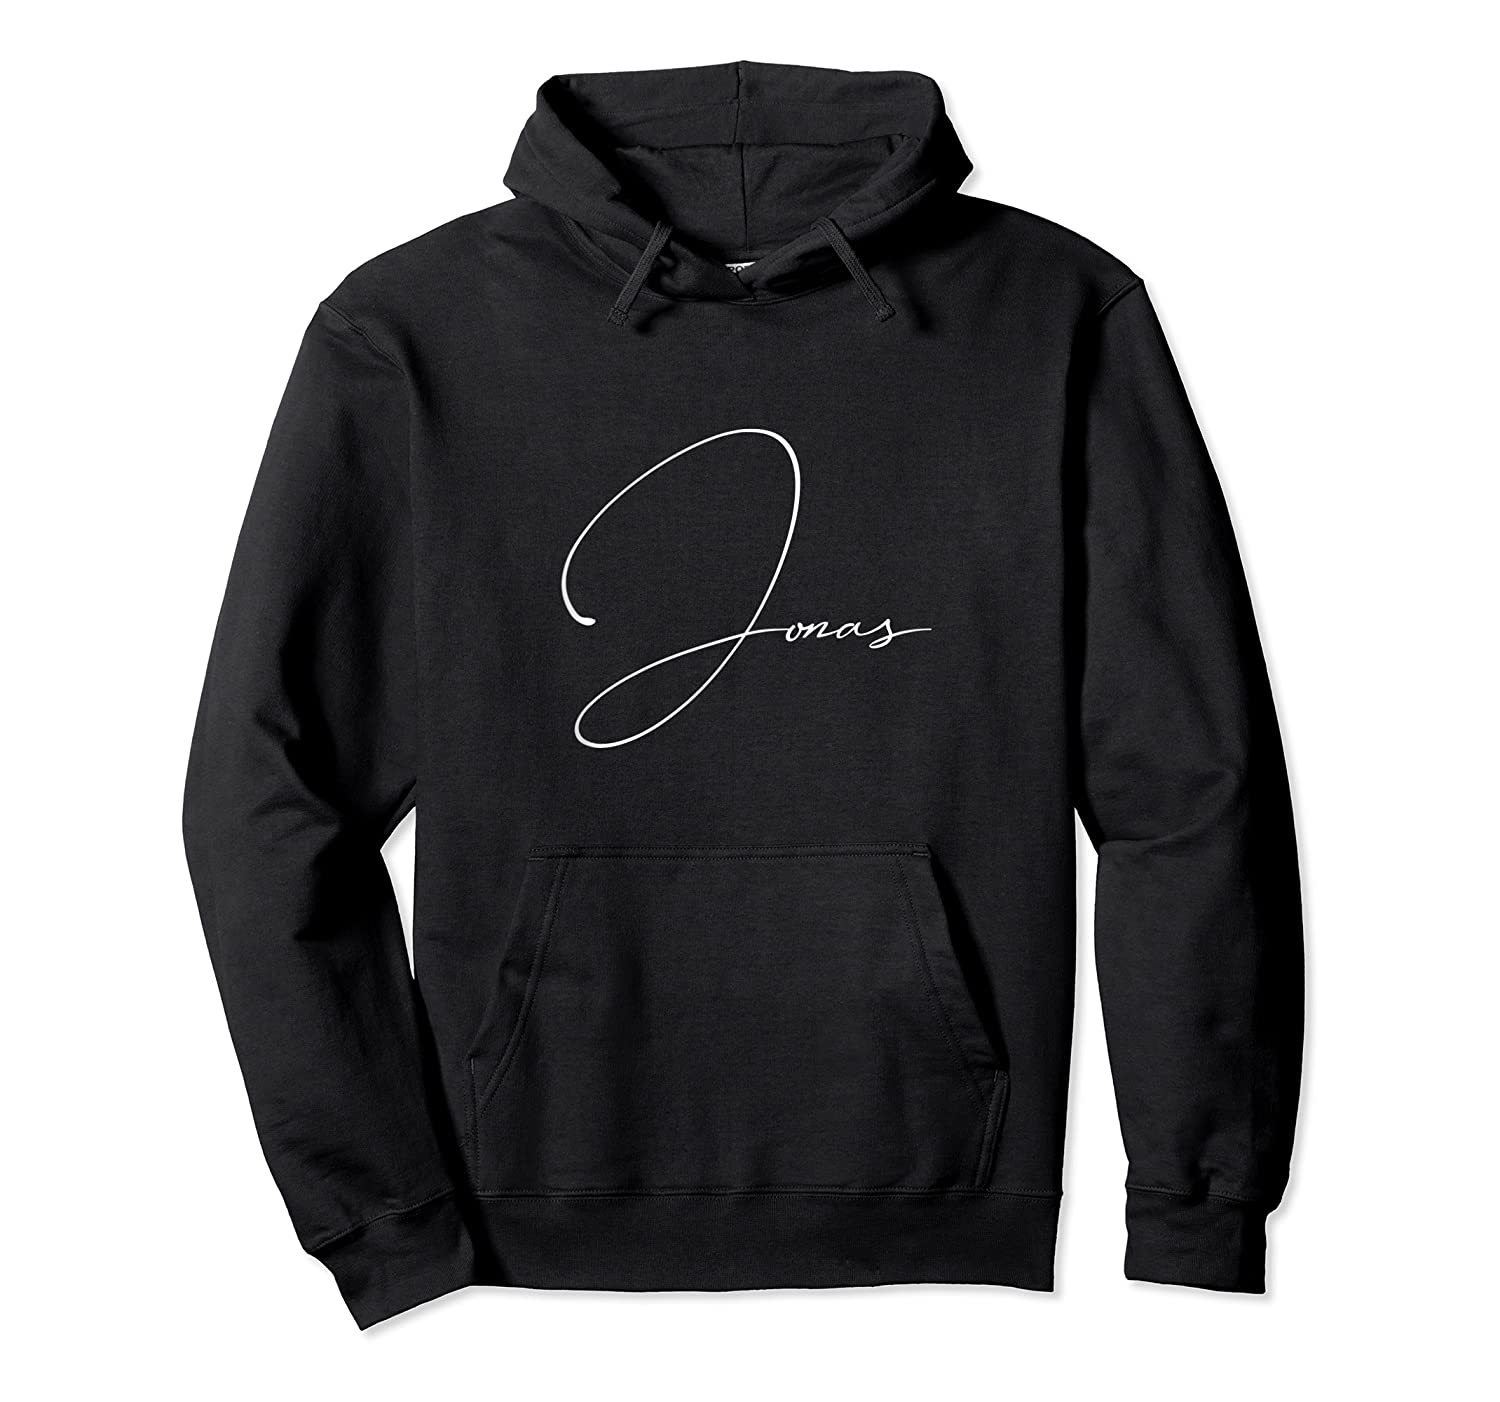 Jonas First Given Name Pride Handwritten Font Tank Top Shirts Unisex Pullover Hoodie